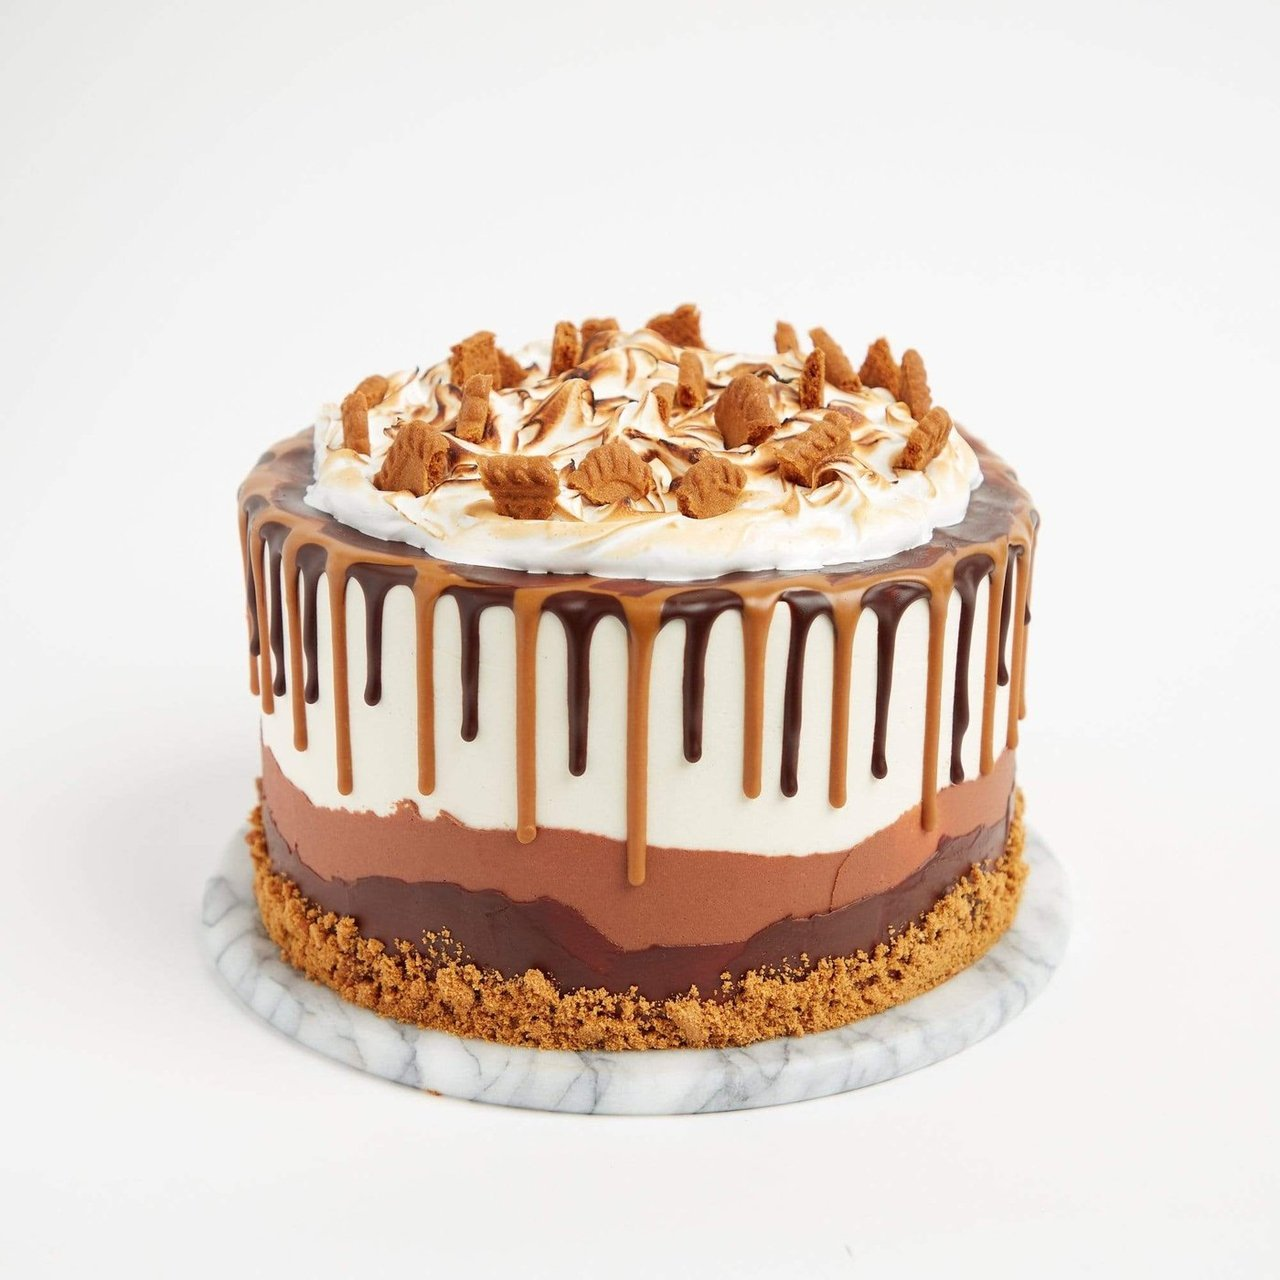 Smores cake by Crumbs & Doilies